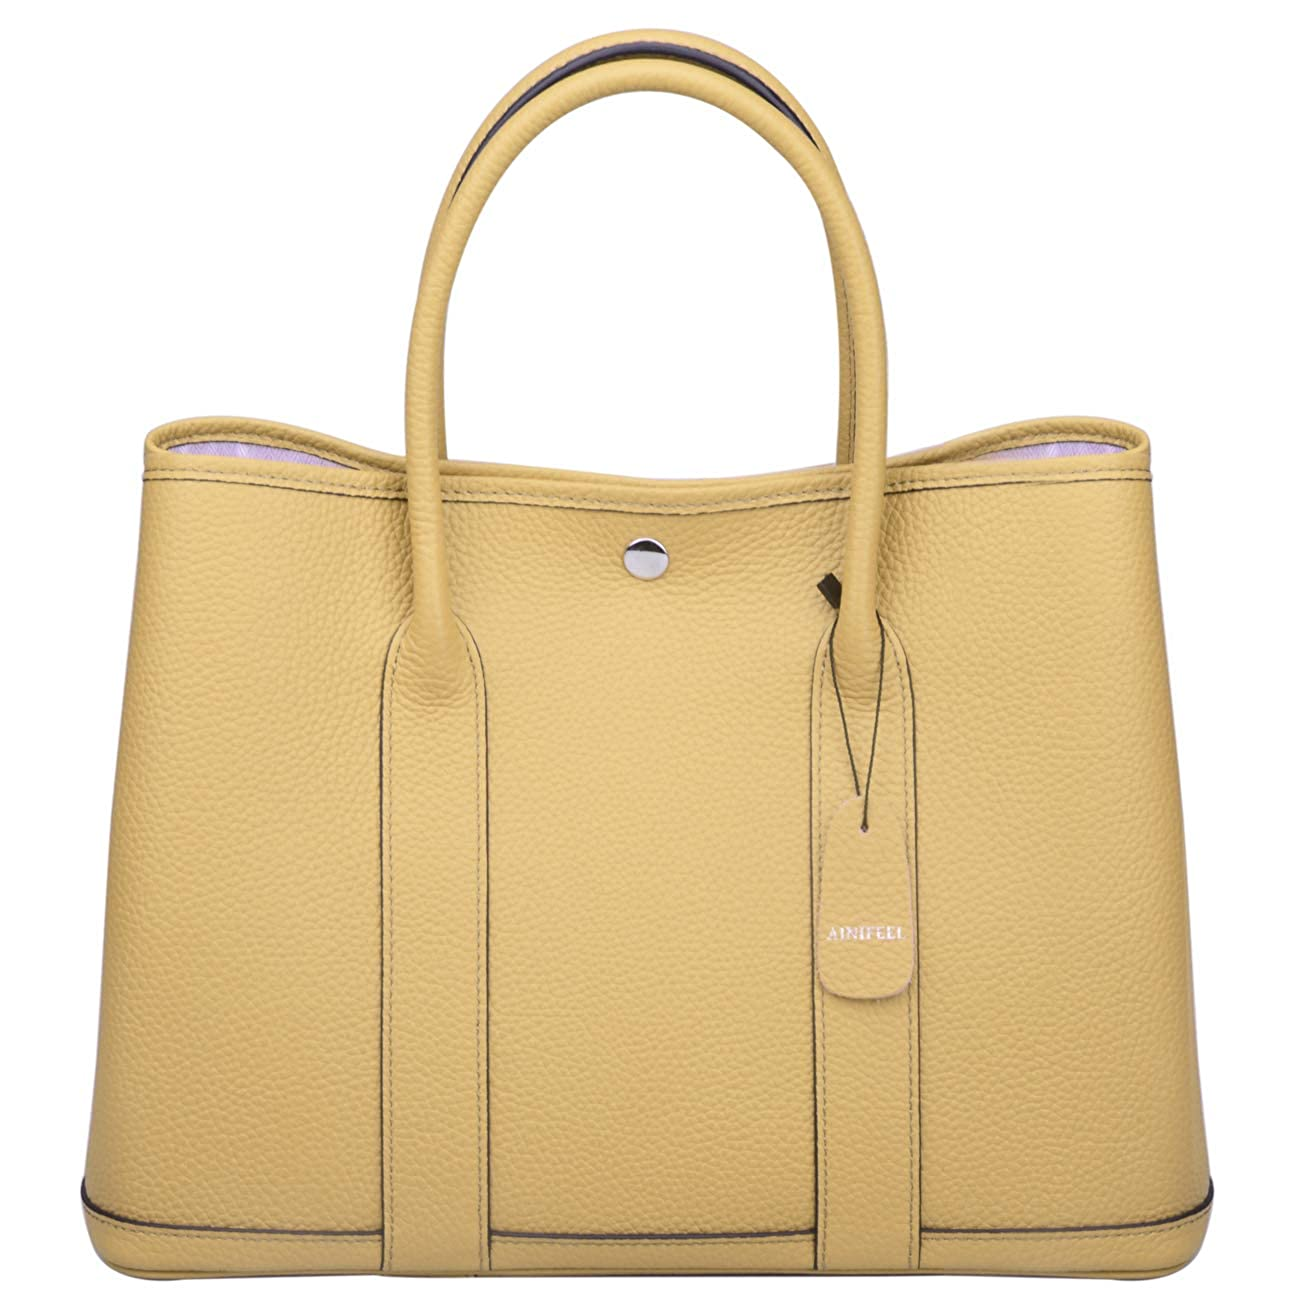 Ainifeel Women s Genuine Leather Tote Bag Top Handle Handbags (Apricot)   Handbags  Amazon.com 413da35b0ddbb